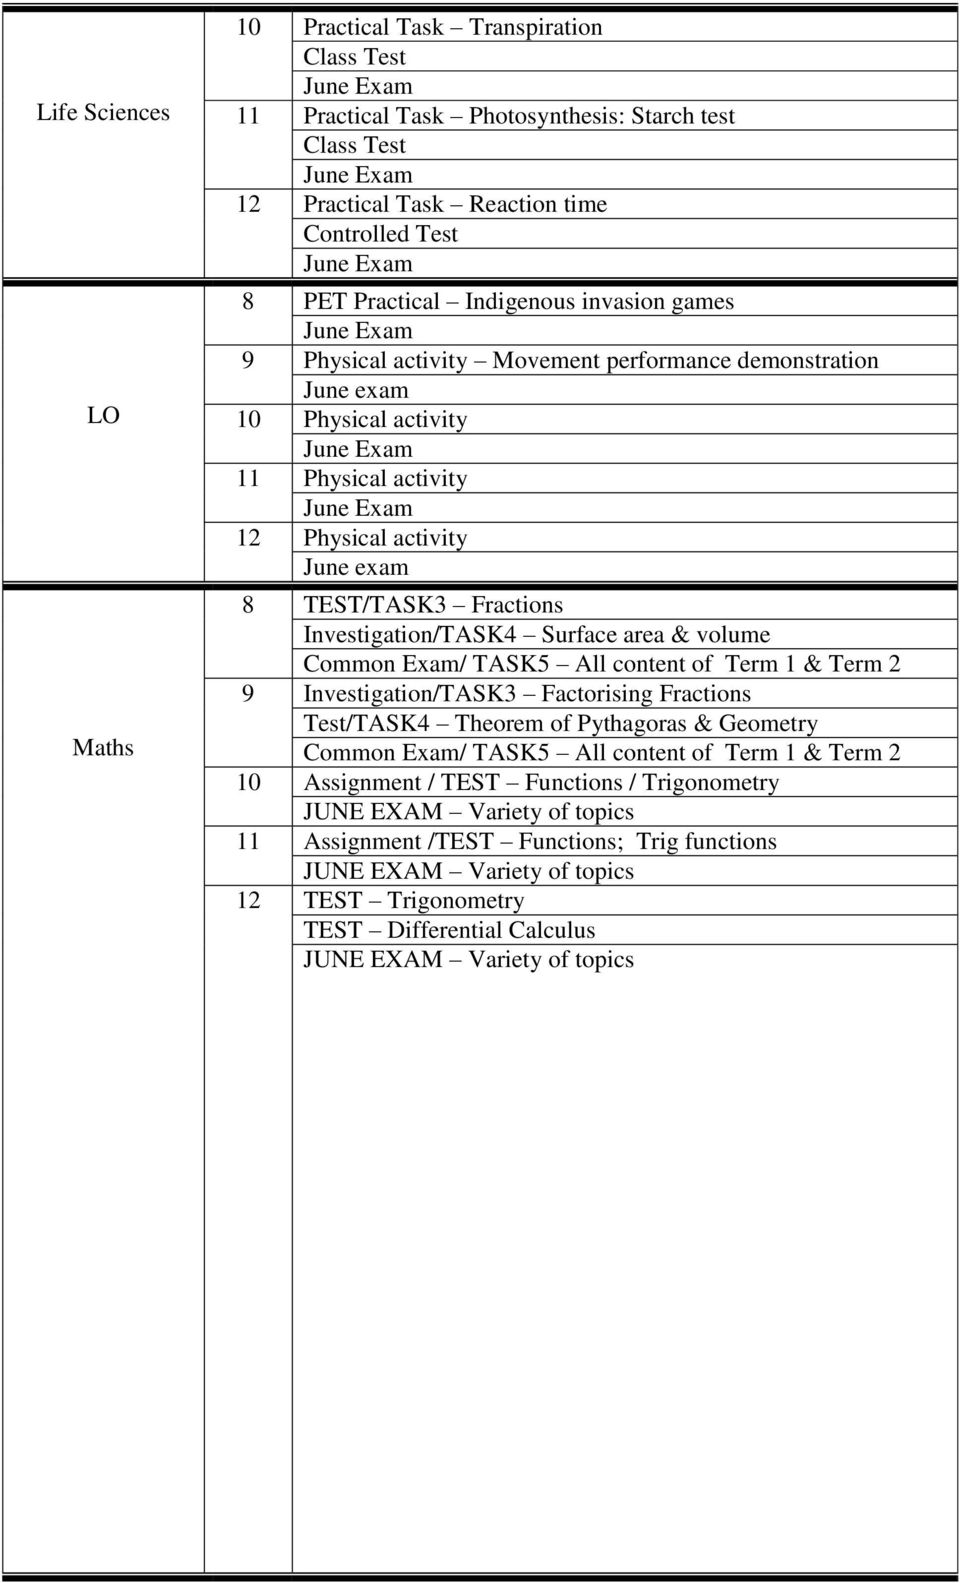 Formal assessment 2016 term 1 pdf surface area volume common exam task5 all content of term 1 term 2 fandeluxe Gallery